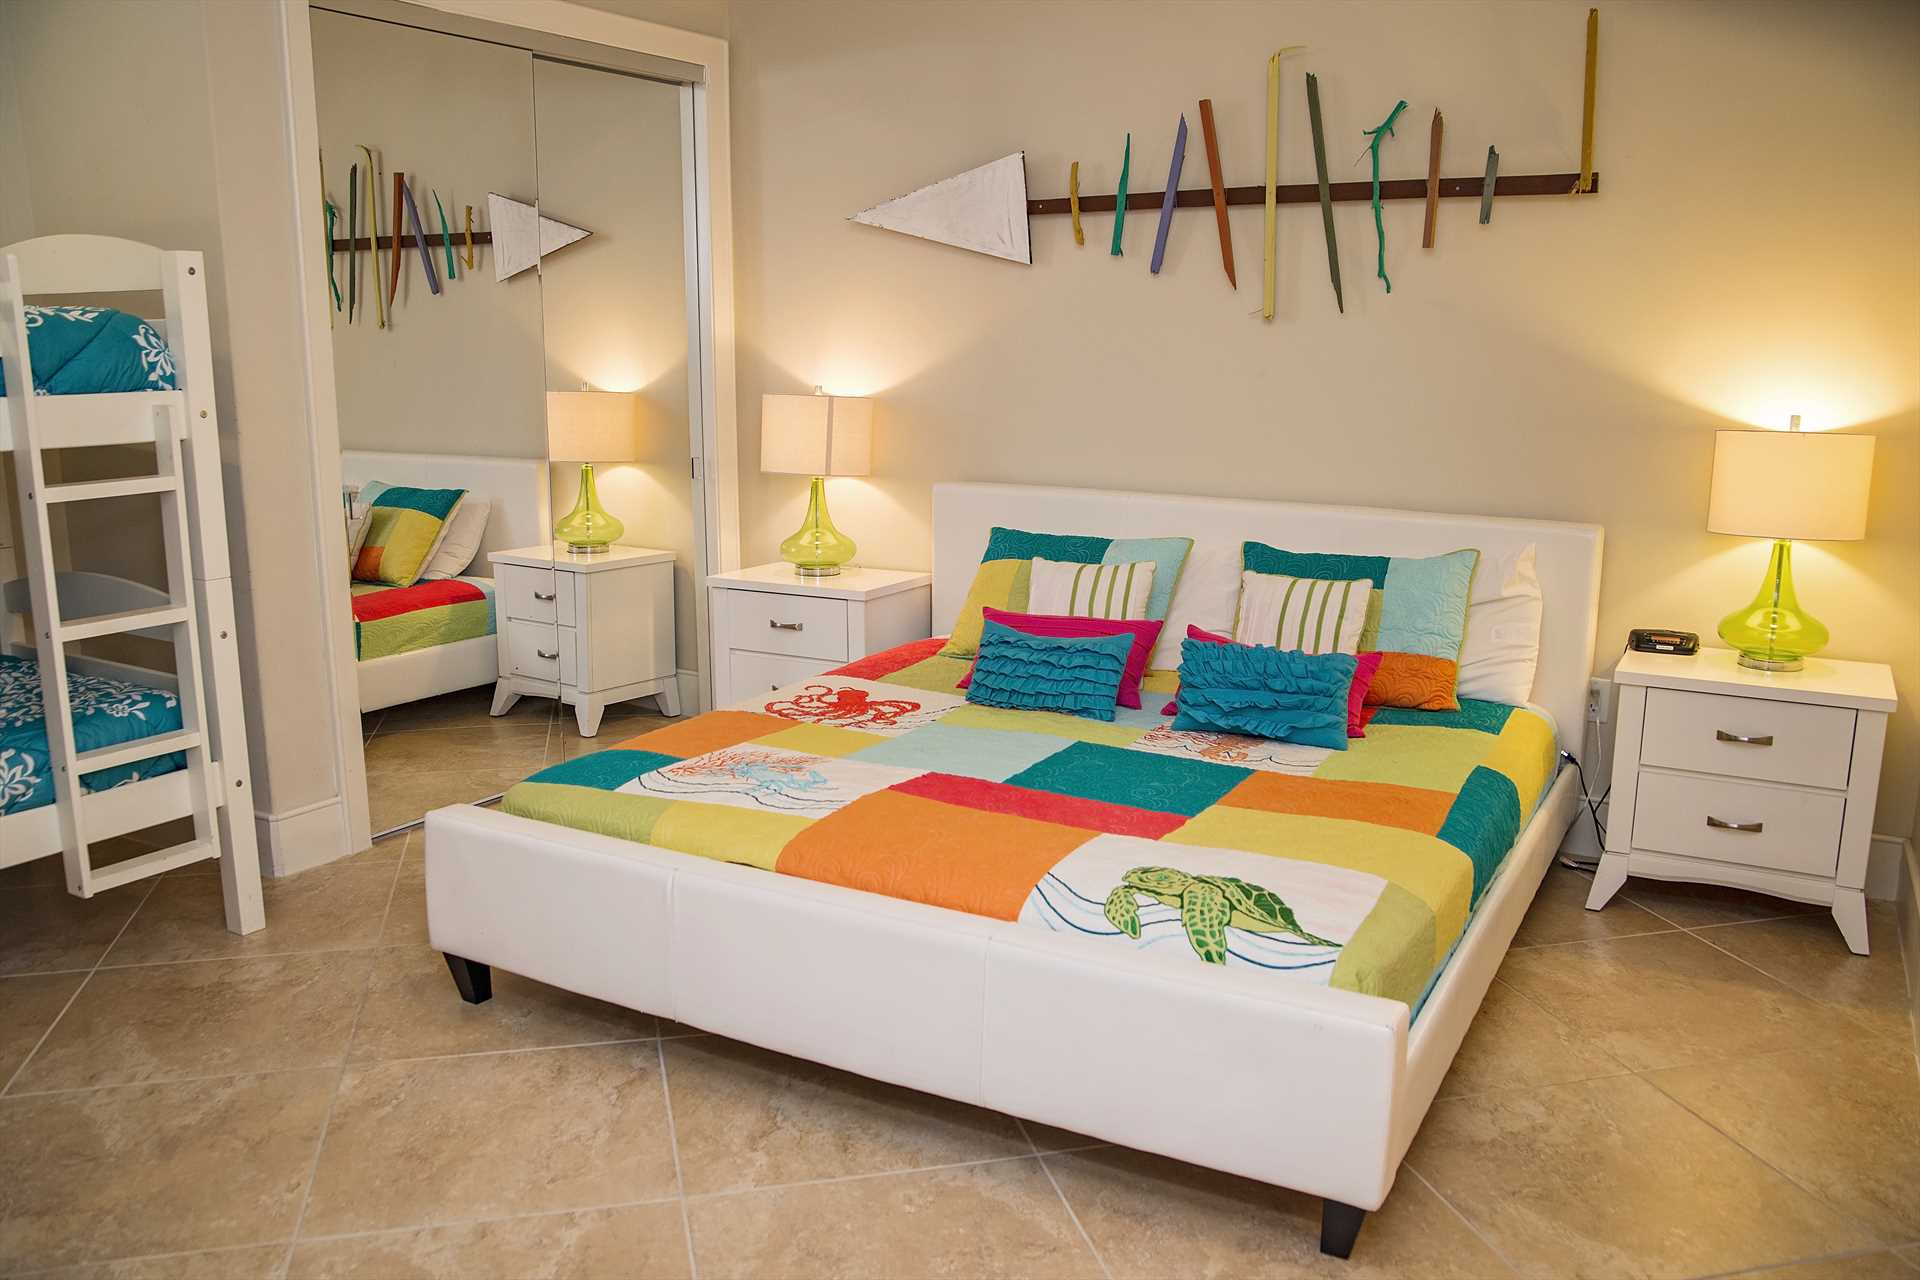 Turquoise Place 2102C Guest Bedroom 1